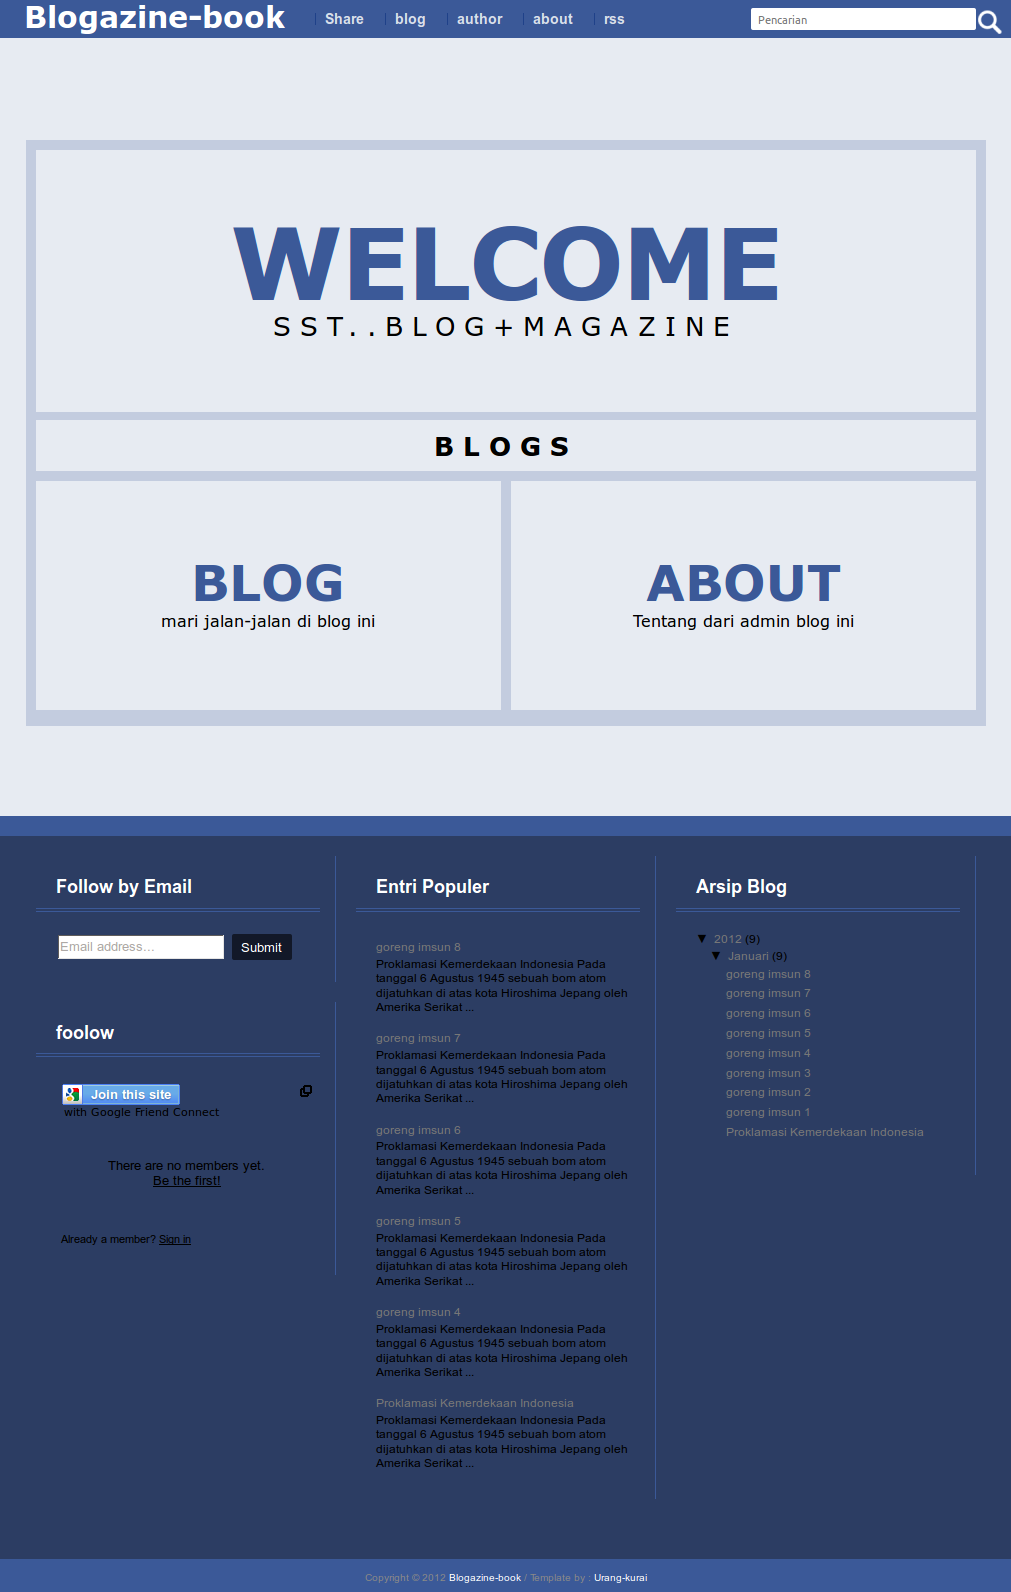 blogger buster and inspiring blogger templates inspired by the design of facebook this blogger template utilizes a unique home page style links to the main blog and about sections